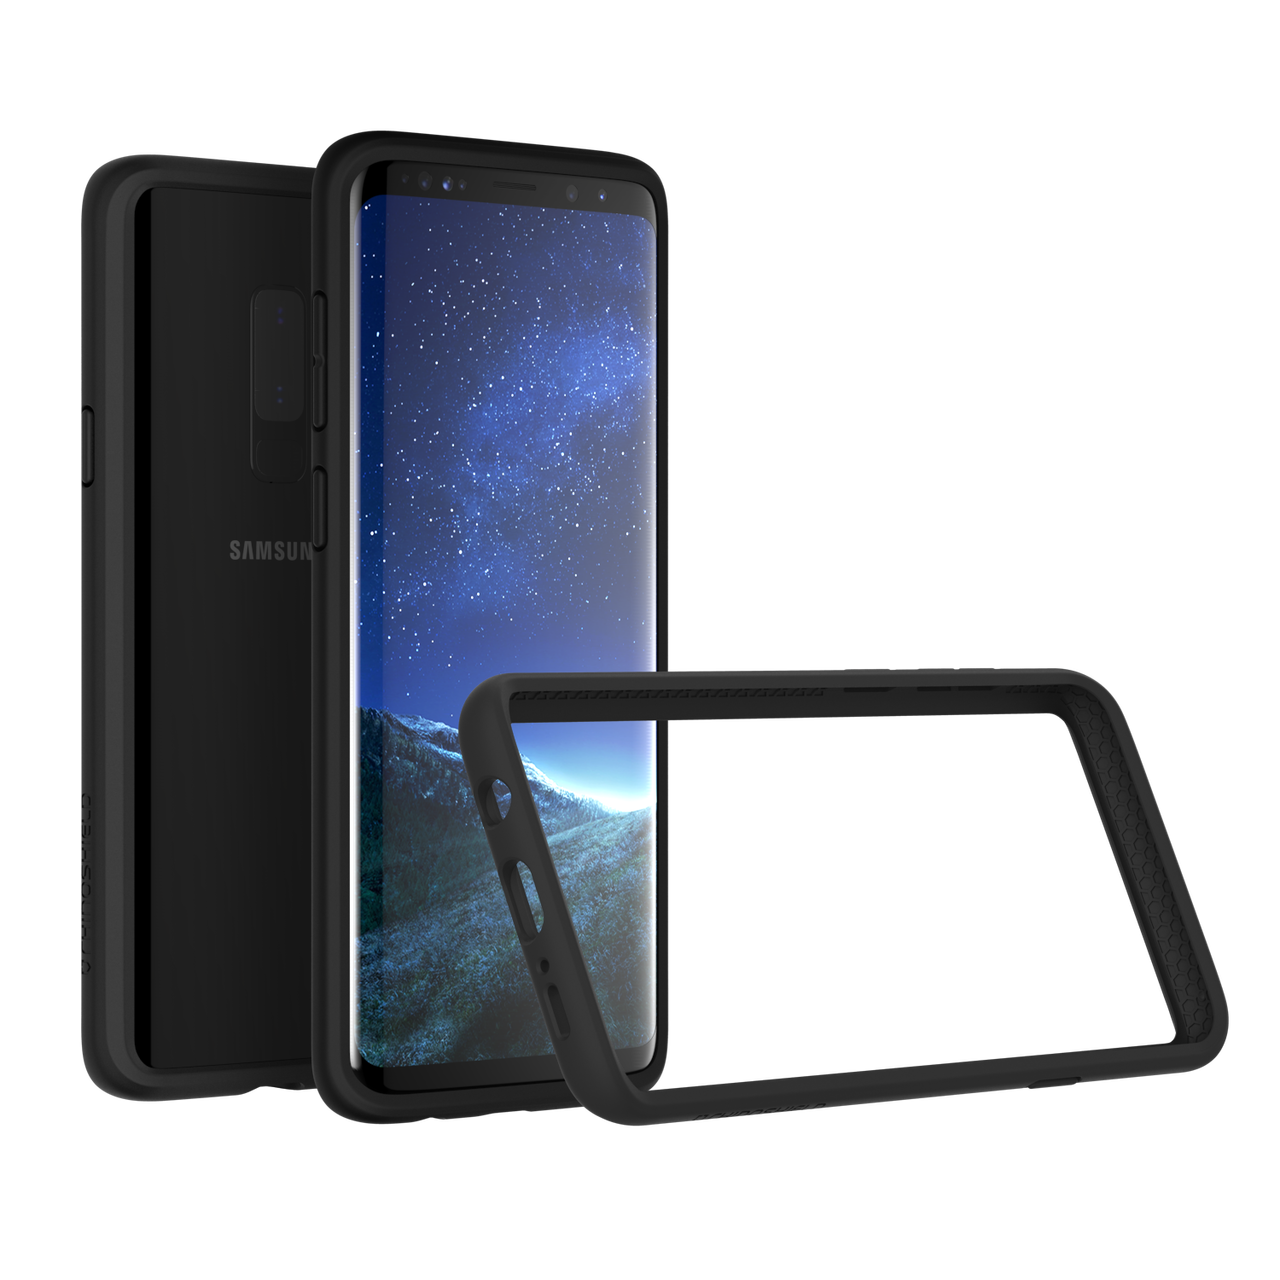 RhinoShield Samsung Galaxy S9 Plus CrashGuard Bumper Case - Black